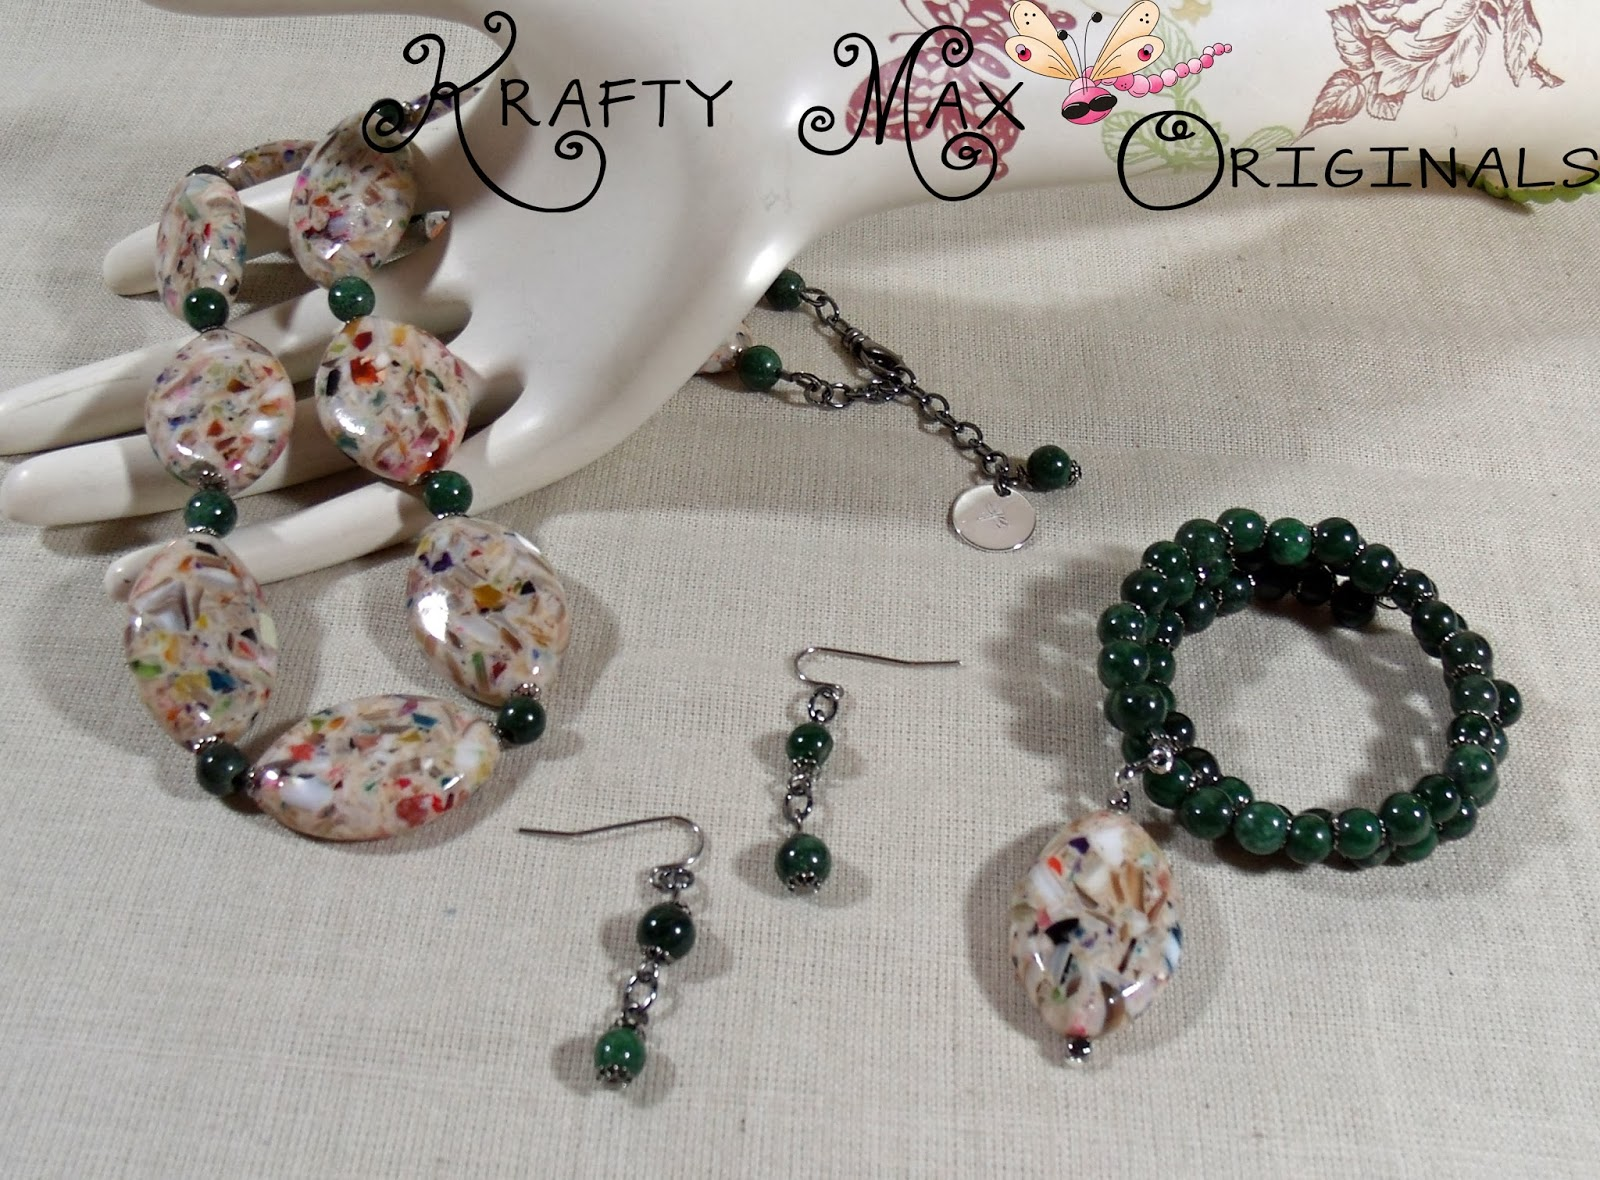 http://www.lajuliet.com/index.php/2013-01-04-15-21-51/ad/gemstone,92/exclusive-green-mixed-up-delight-3-piece-necklace-set-a-krafty-max-original-design,124